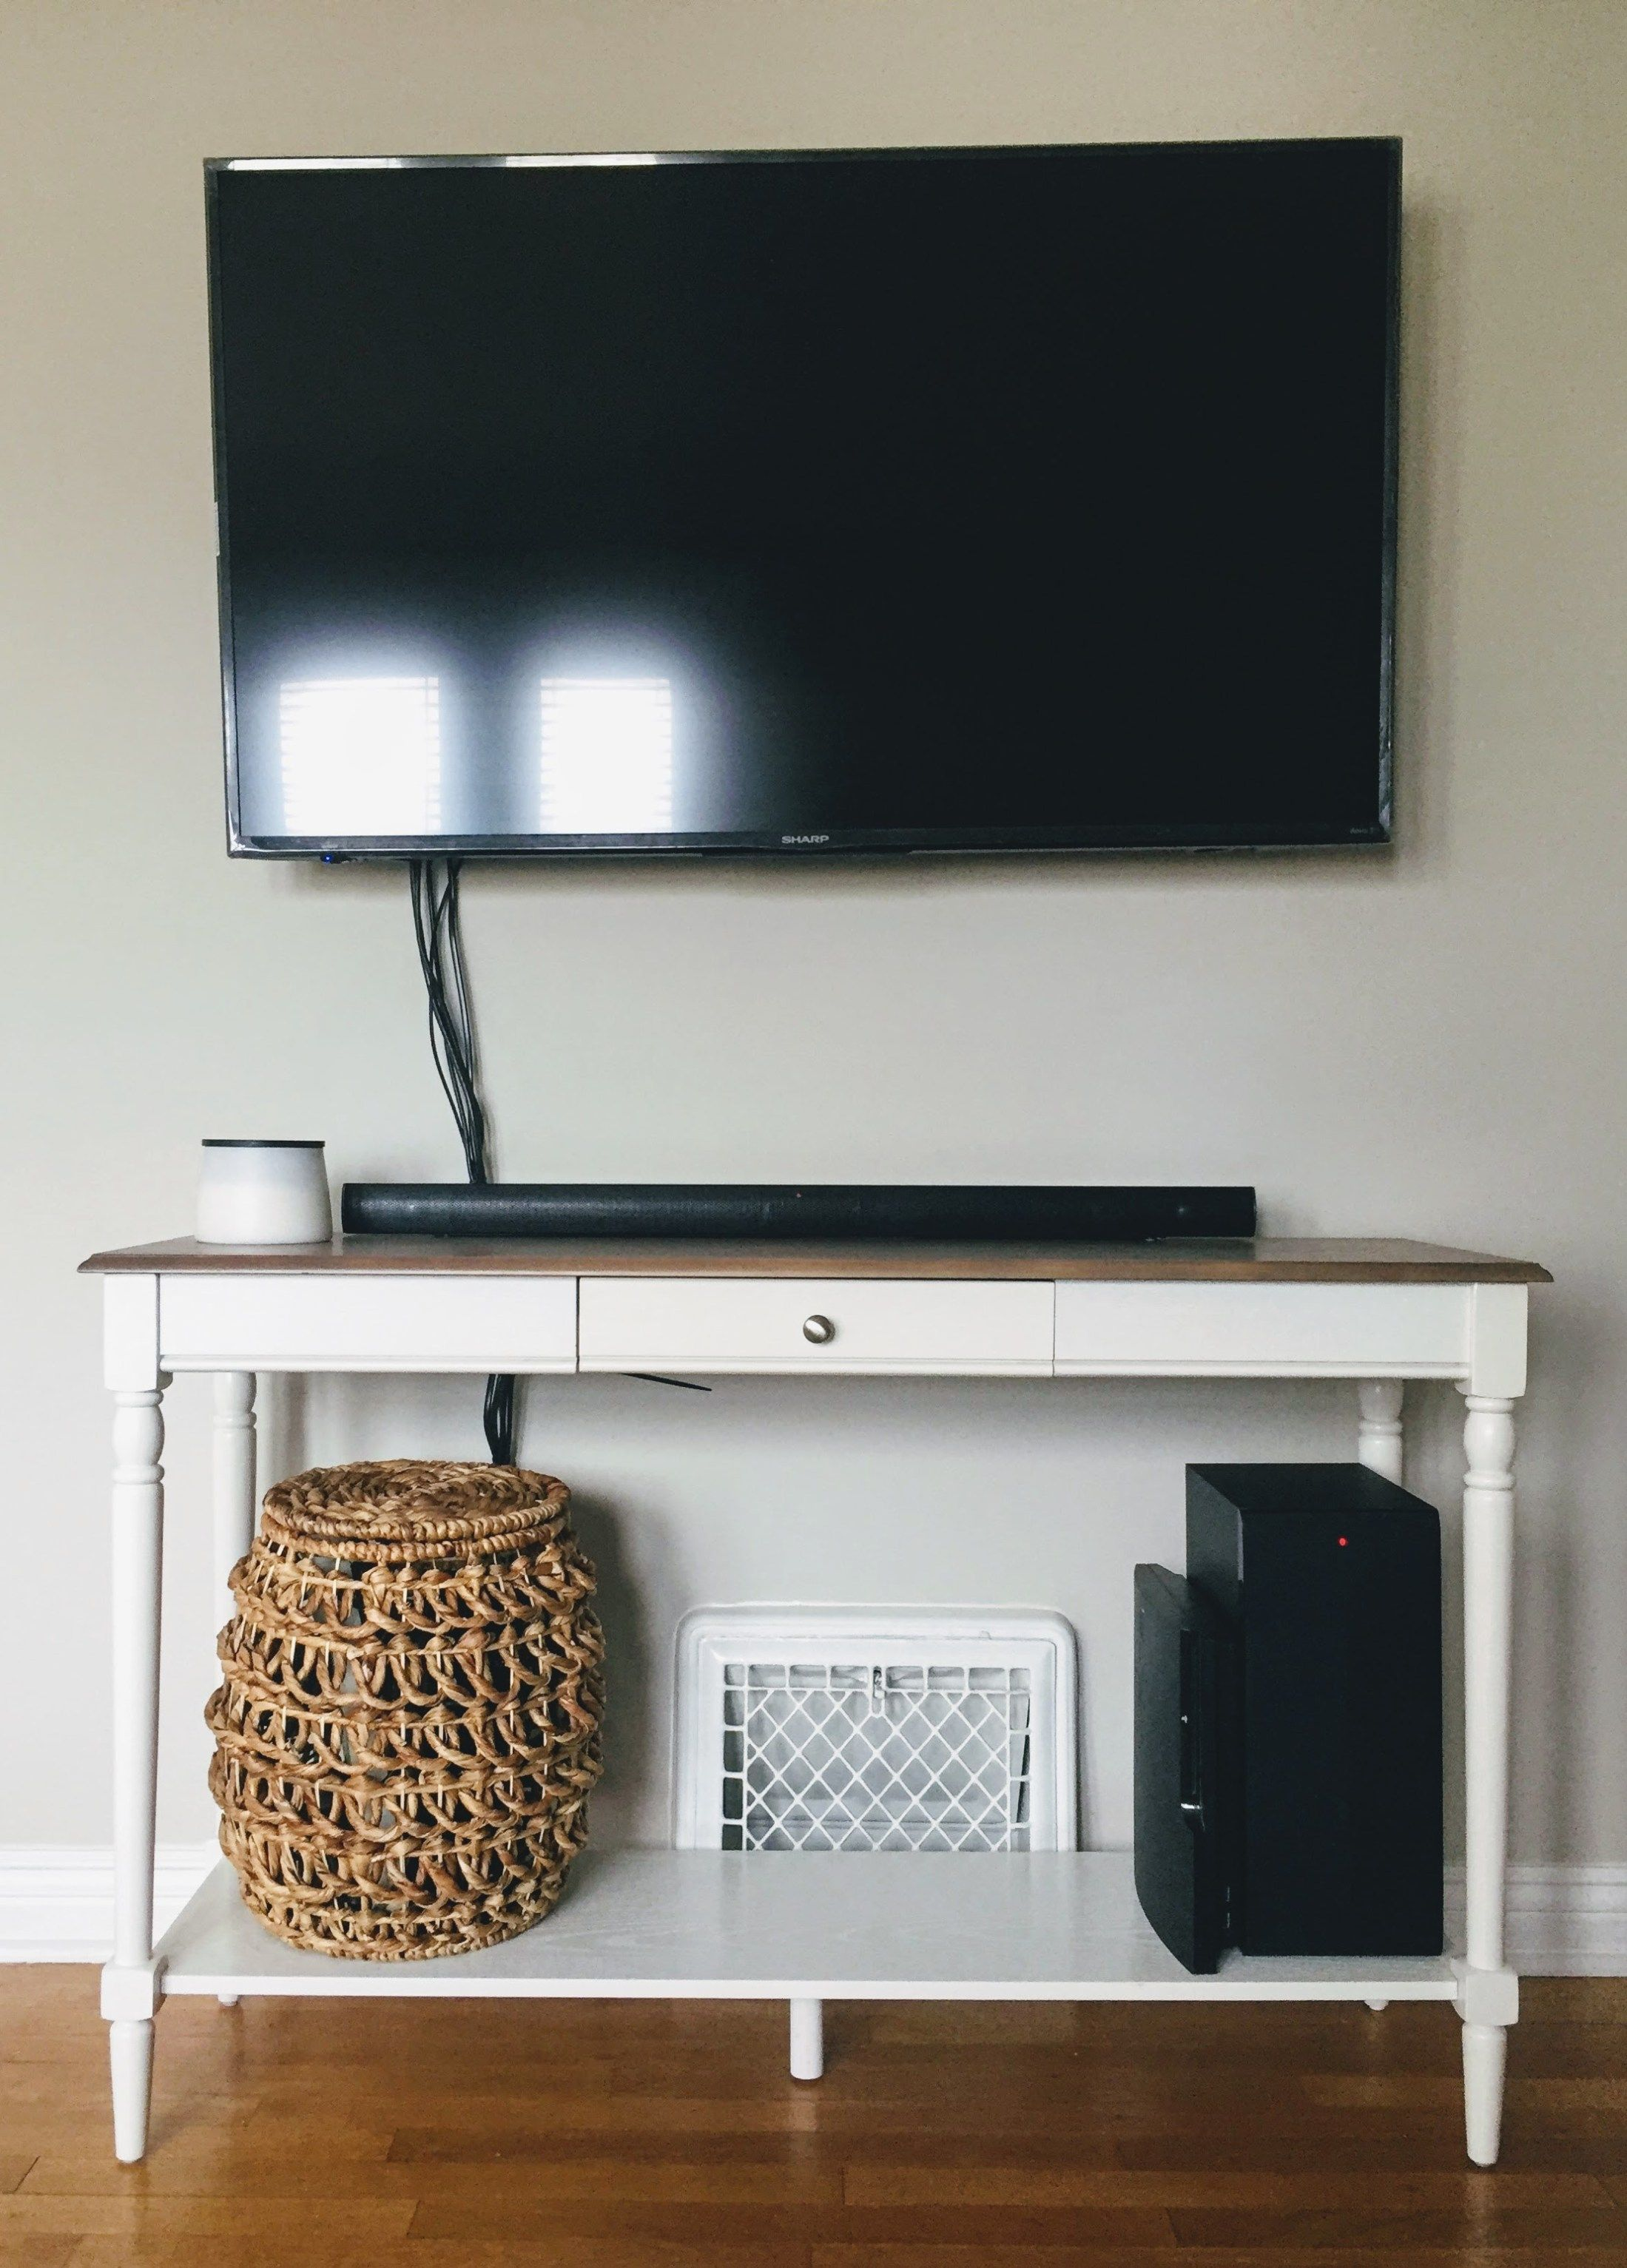 Mounted Tv With Console Table In Progress Hide Cables And Cable Box Using A Basket How To Hide Mounted Tv Cables Witho Hide Tv Wires Mounted Tv Hide Cables